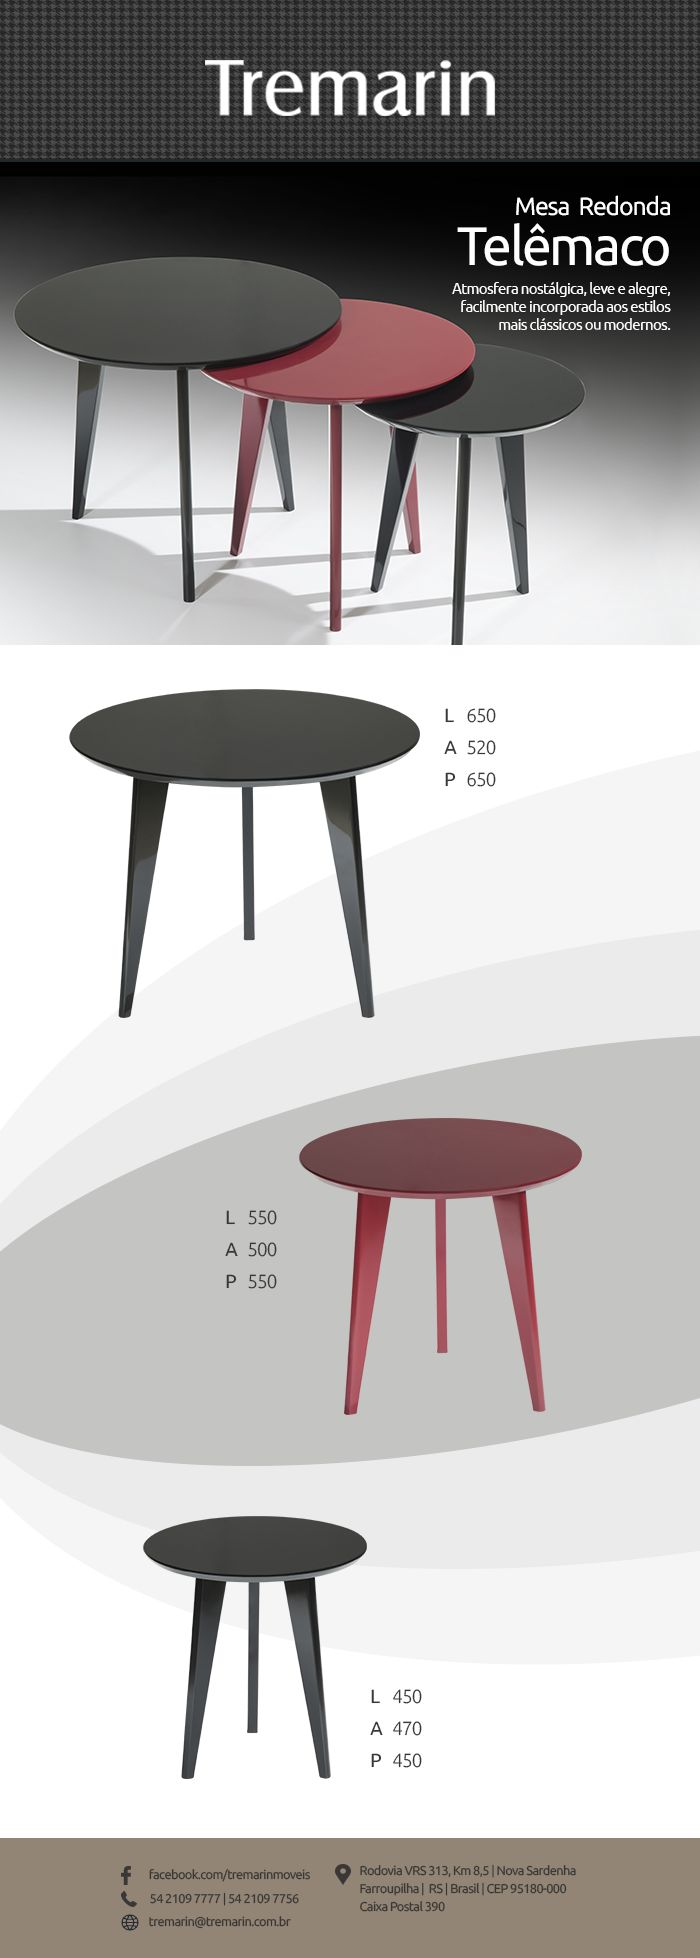 wohnzimmermobel polstermoebel : 9 Best Complementos Images On Pinterest Tables Board And Design